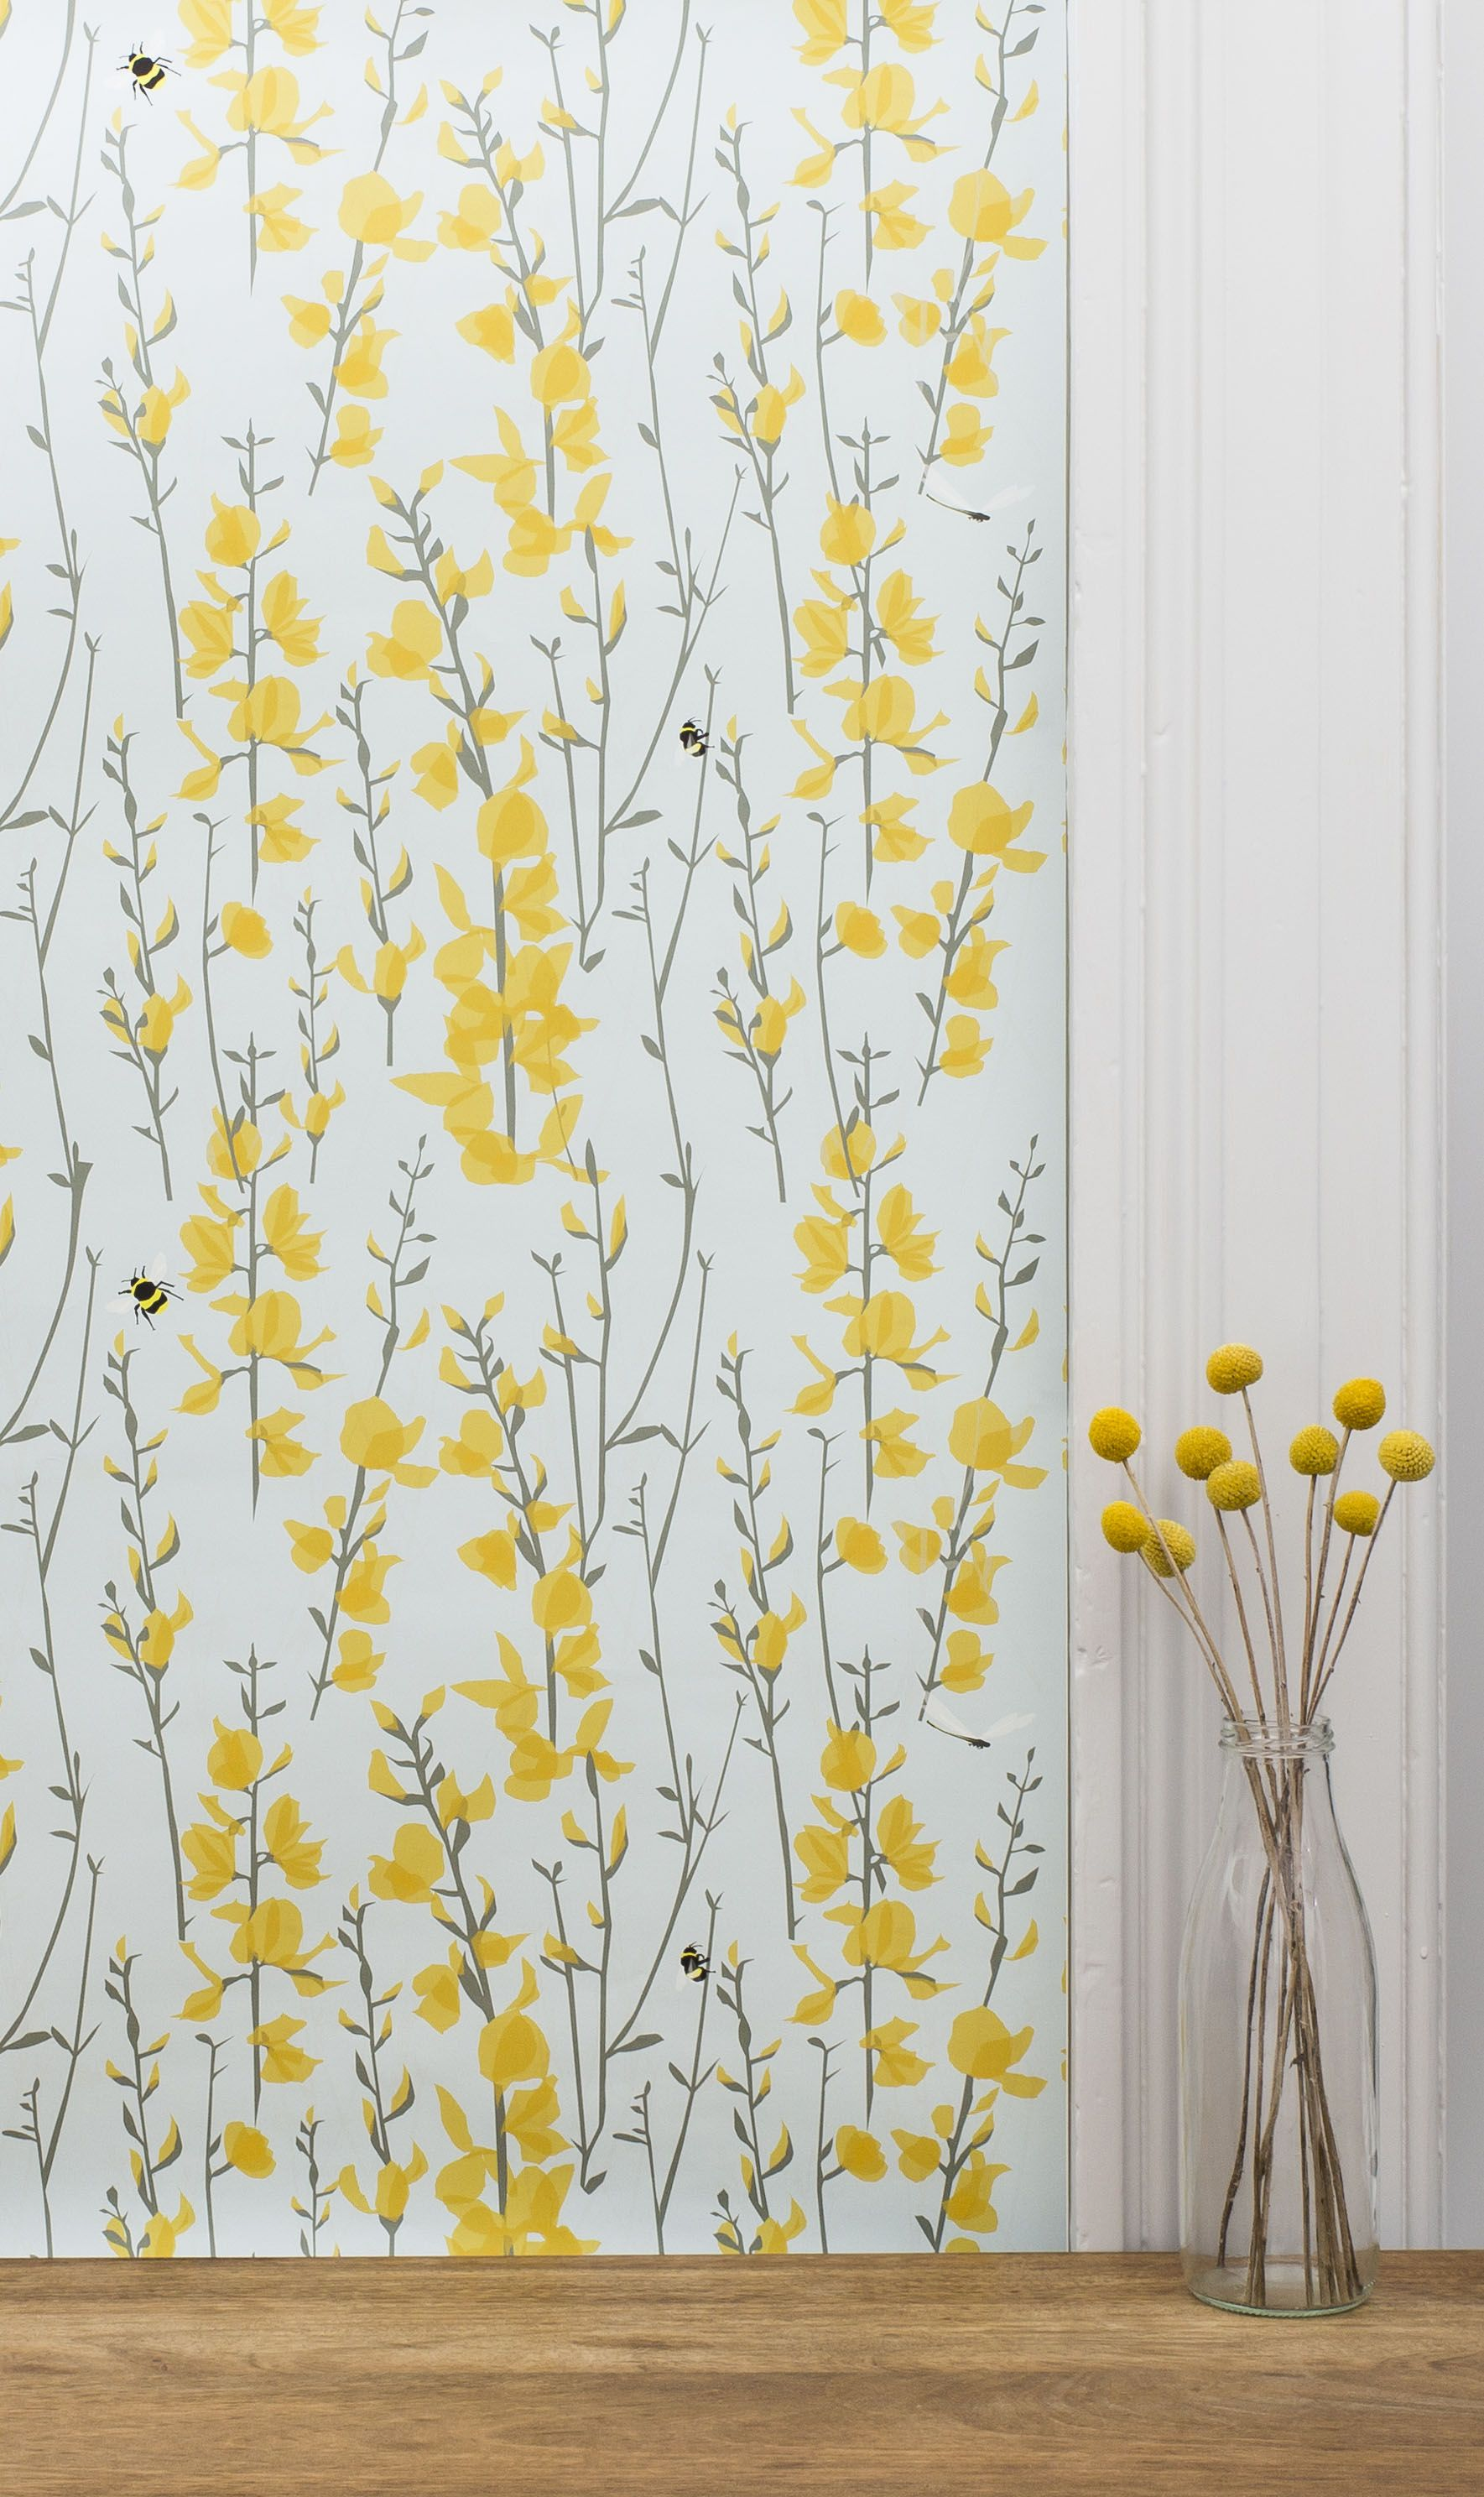 Lorna Syson Broom u Bee Wallpaper Fresh and floral contemporary